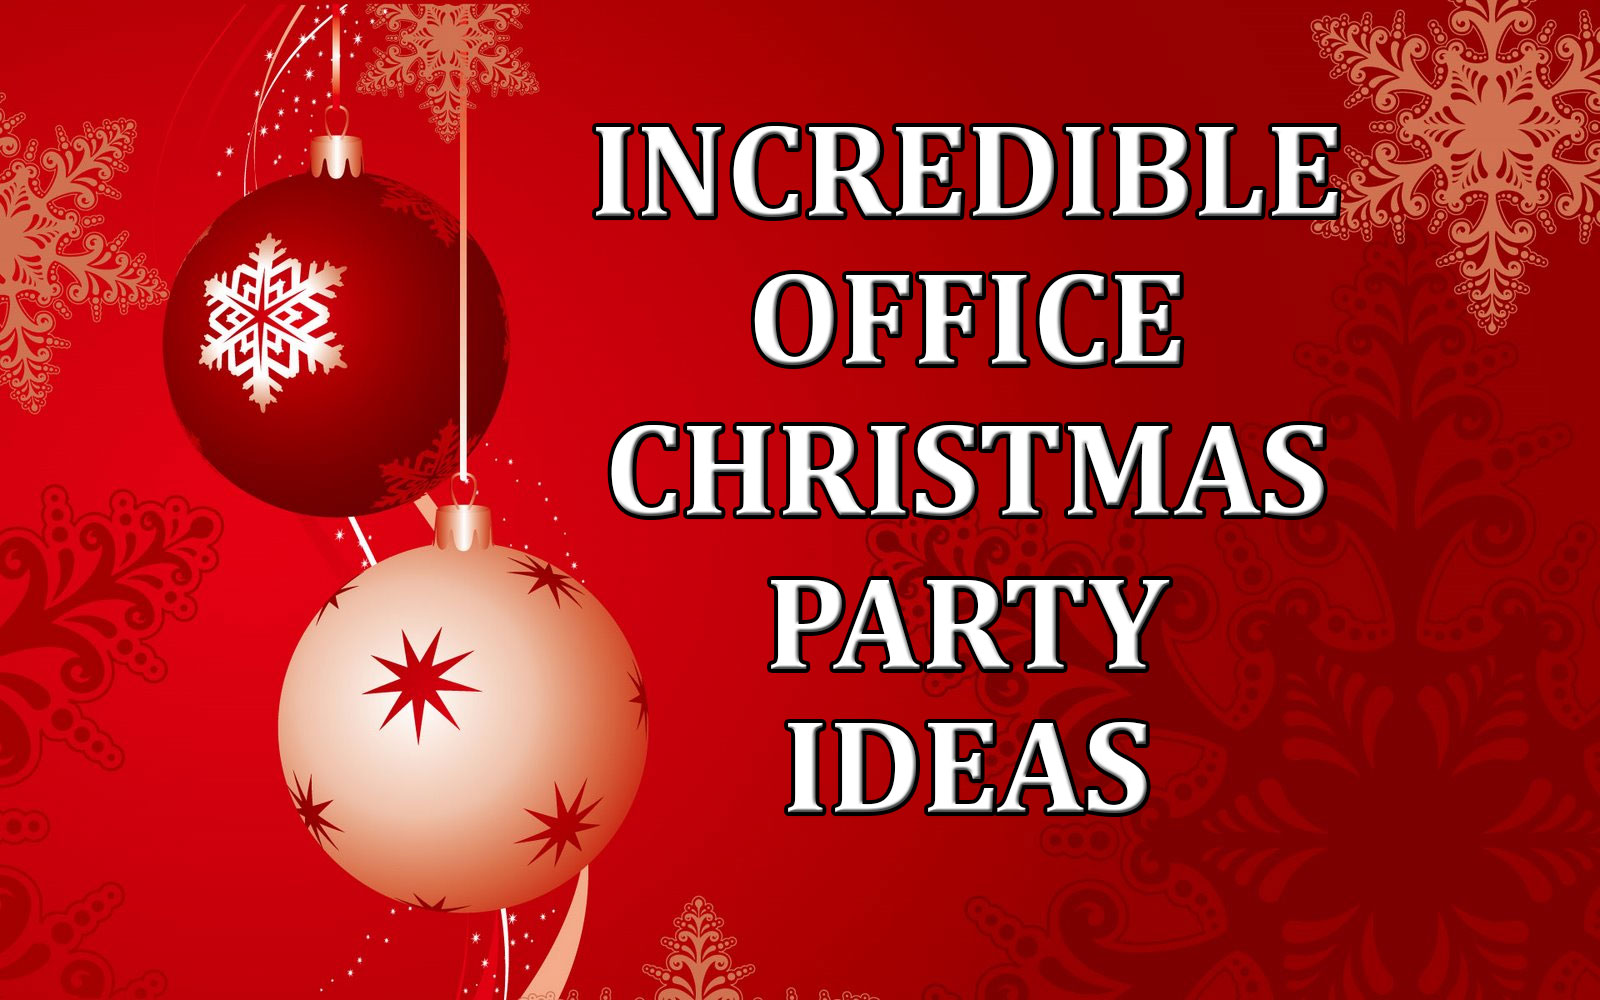 Superior Christmas Party Ideas For Office Part - 9: Incredible Office Christmas Party Ideas